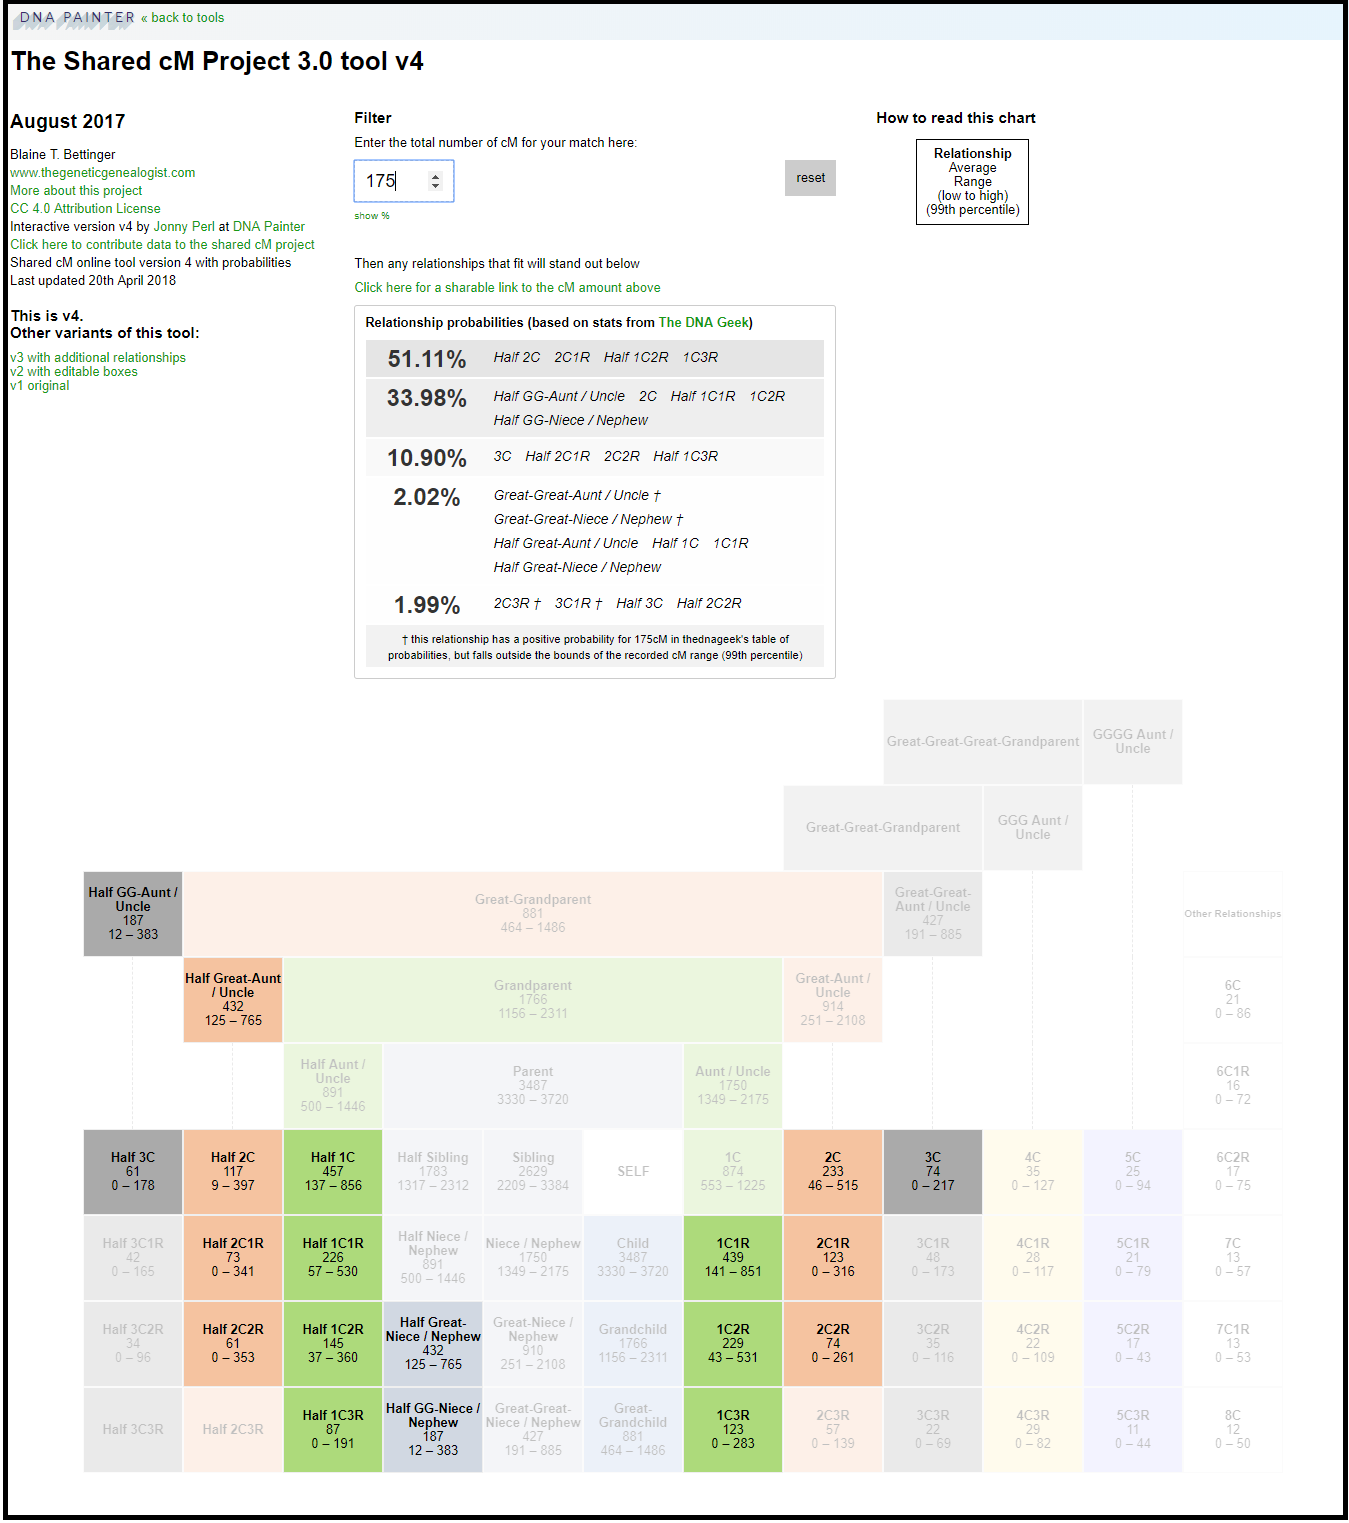 Shared cM Project 3.0 tool v4 with relationship probabilities